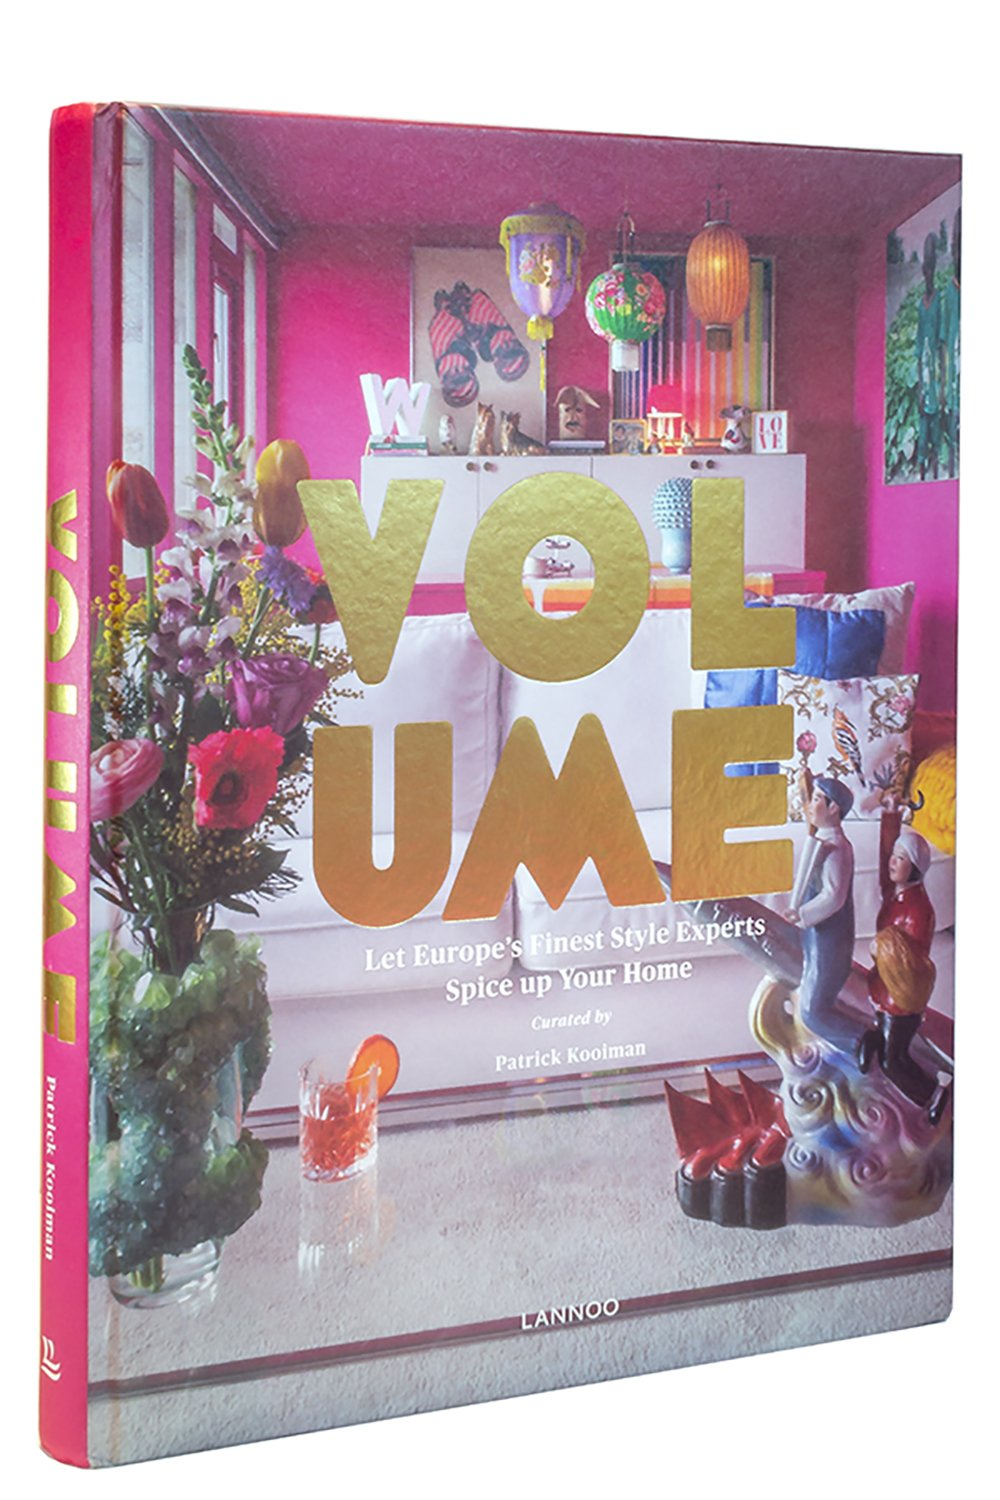 VOLUME - Let Europe's Finest Style Experts Spice up Your Home